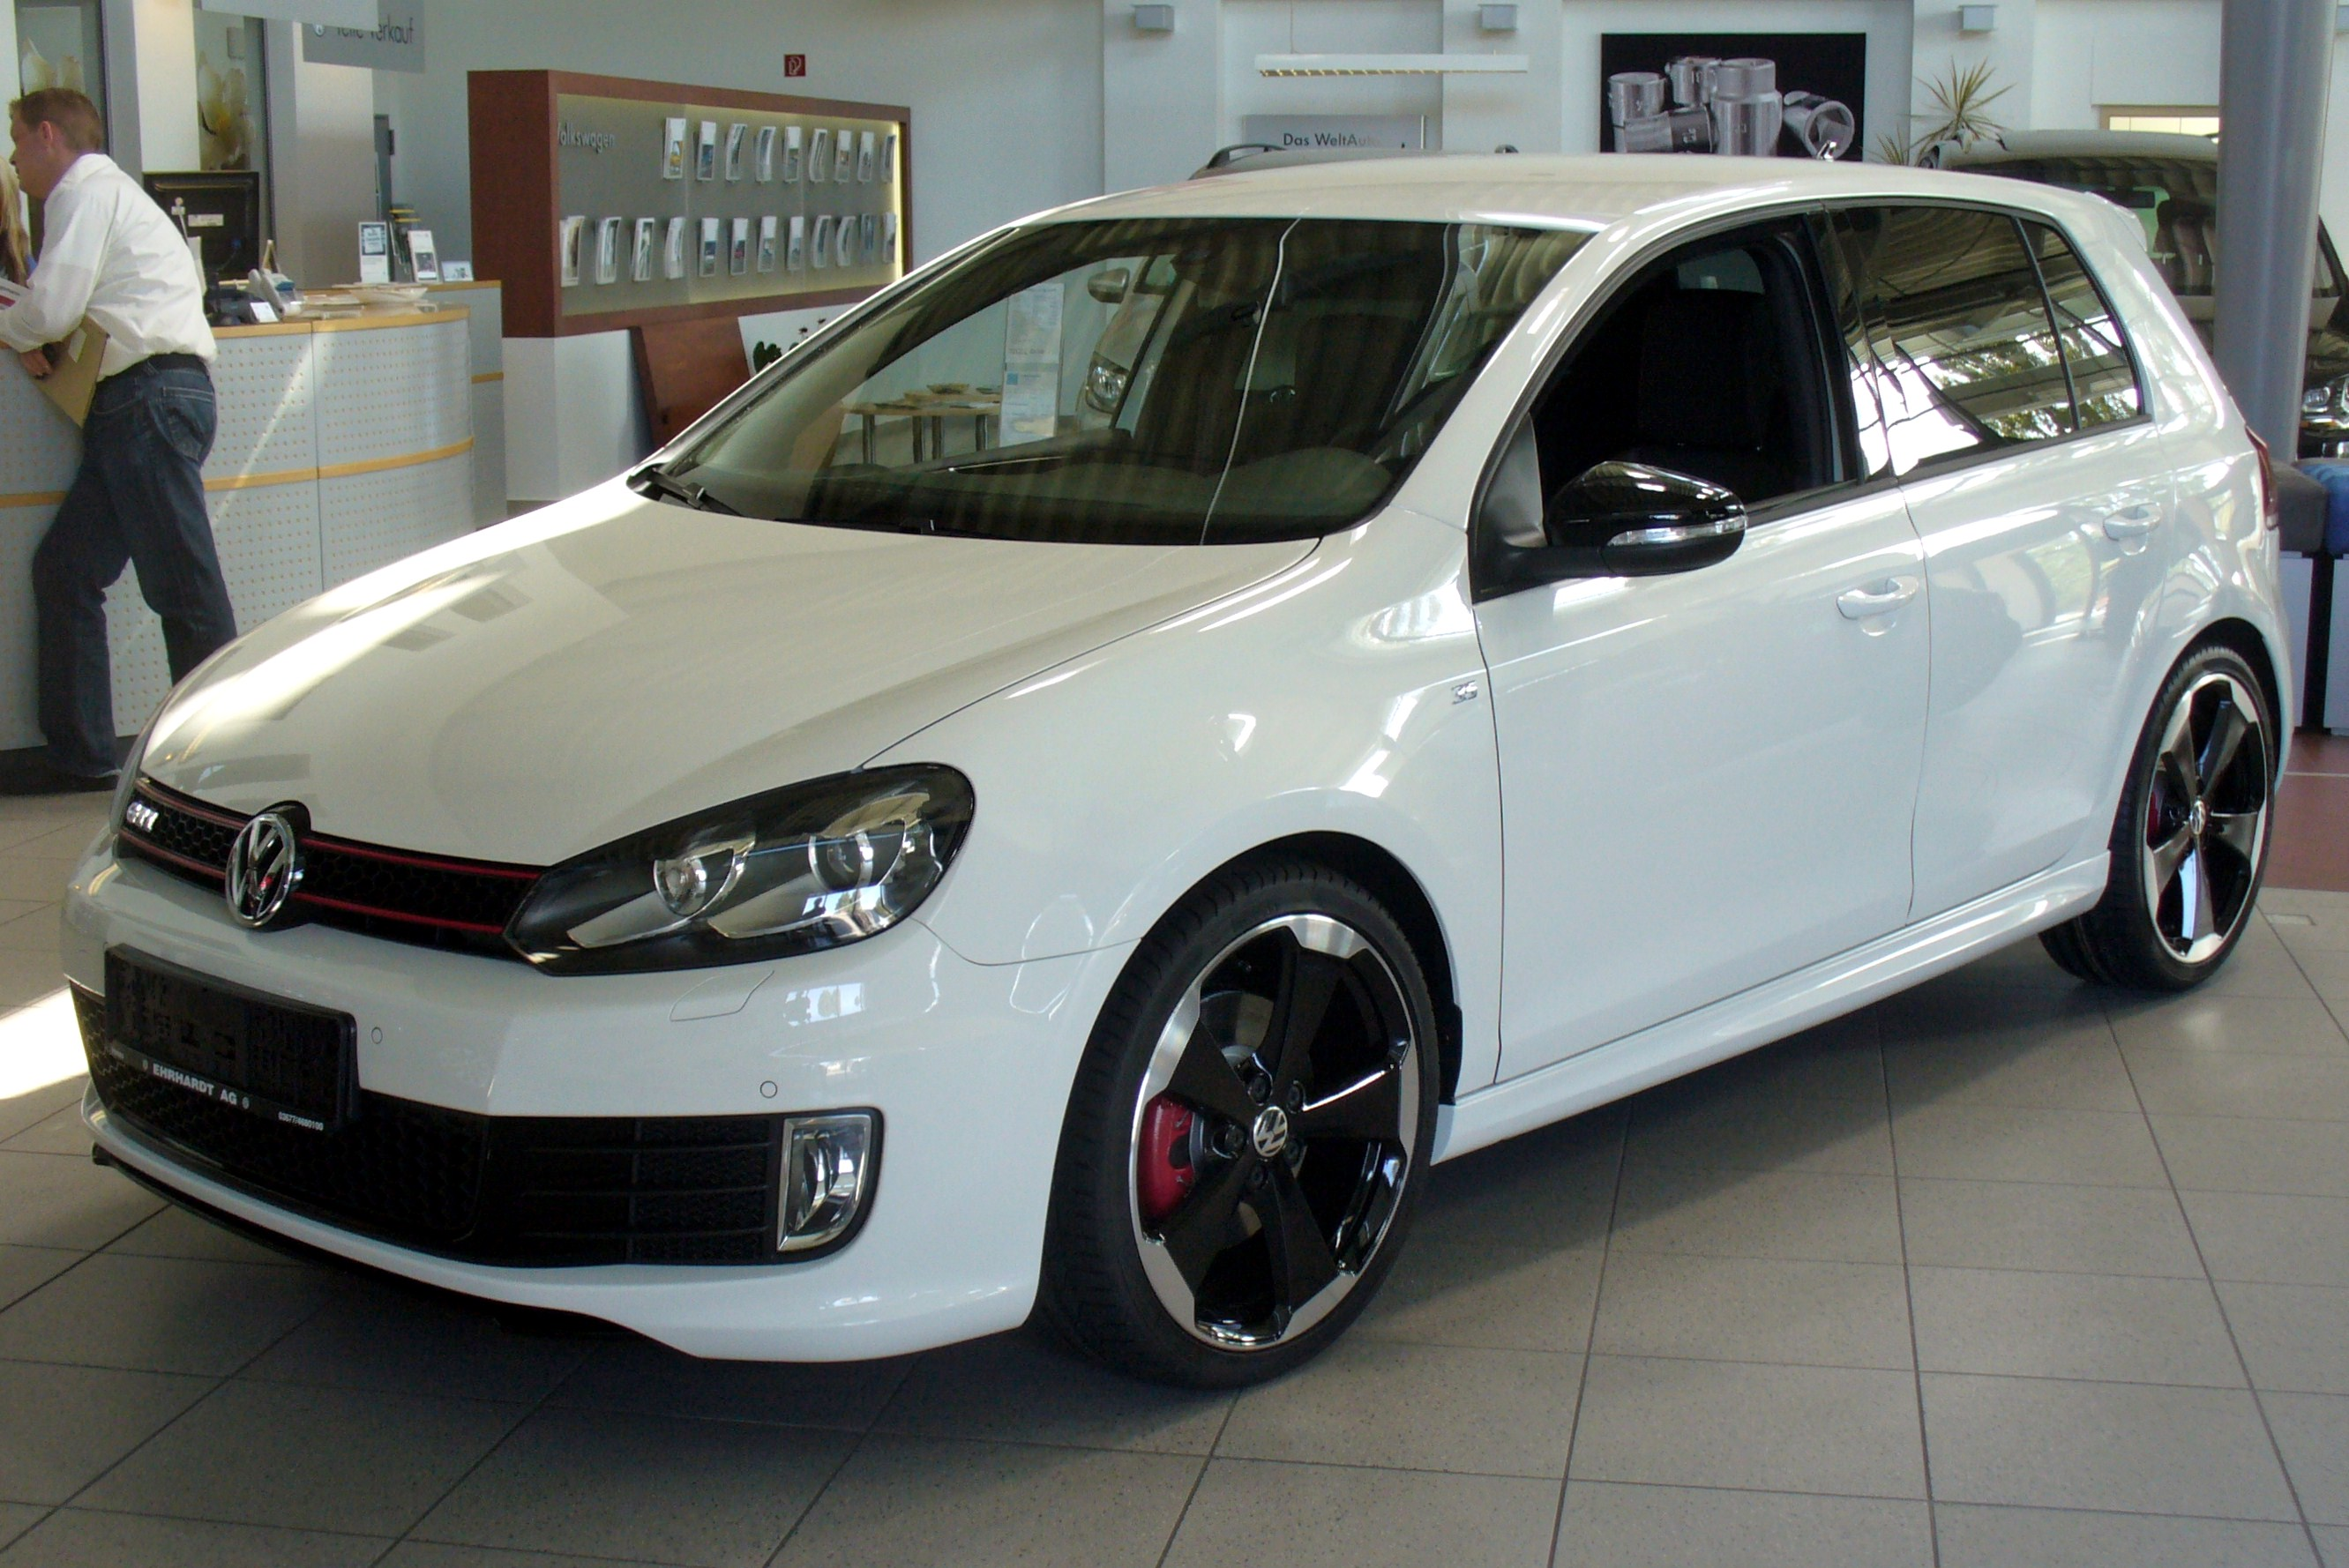 File:VW Golf VI GTI Edition 35.JPG - Wikimedia Commons